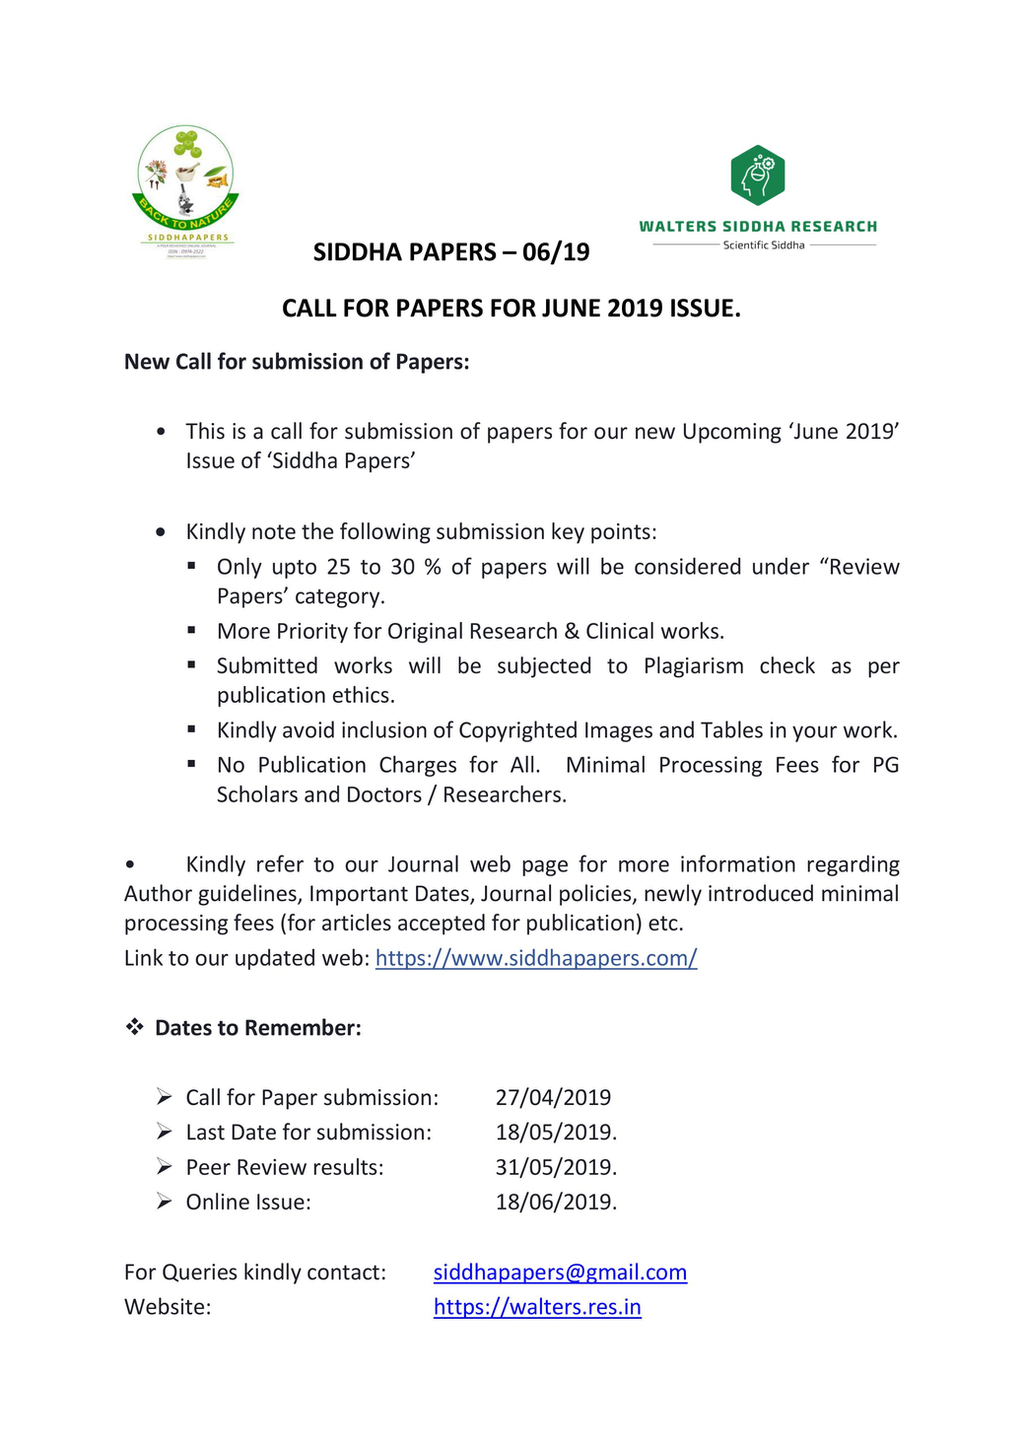 Call for Papers - June 2019 issue